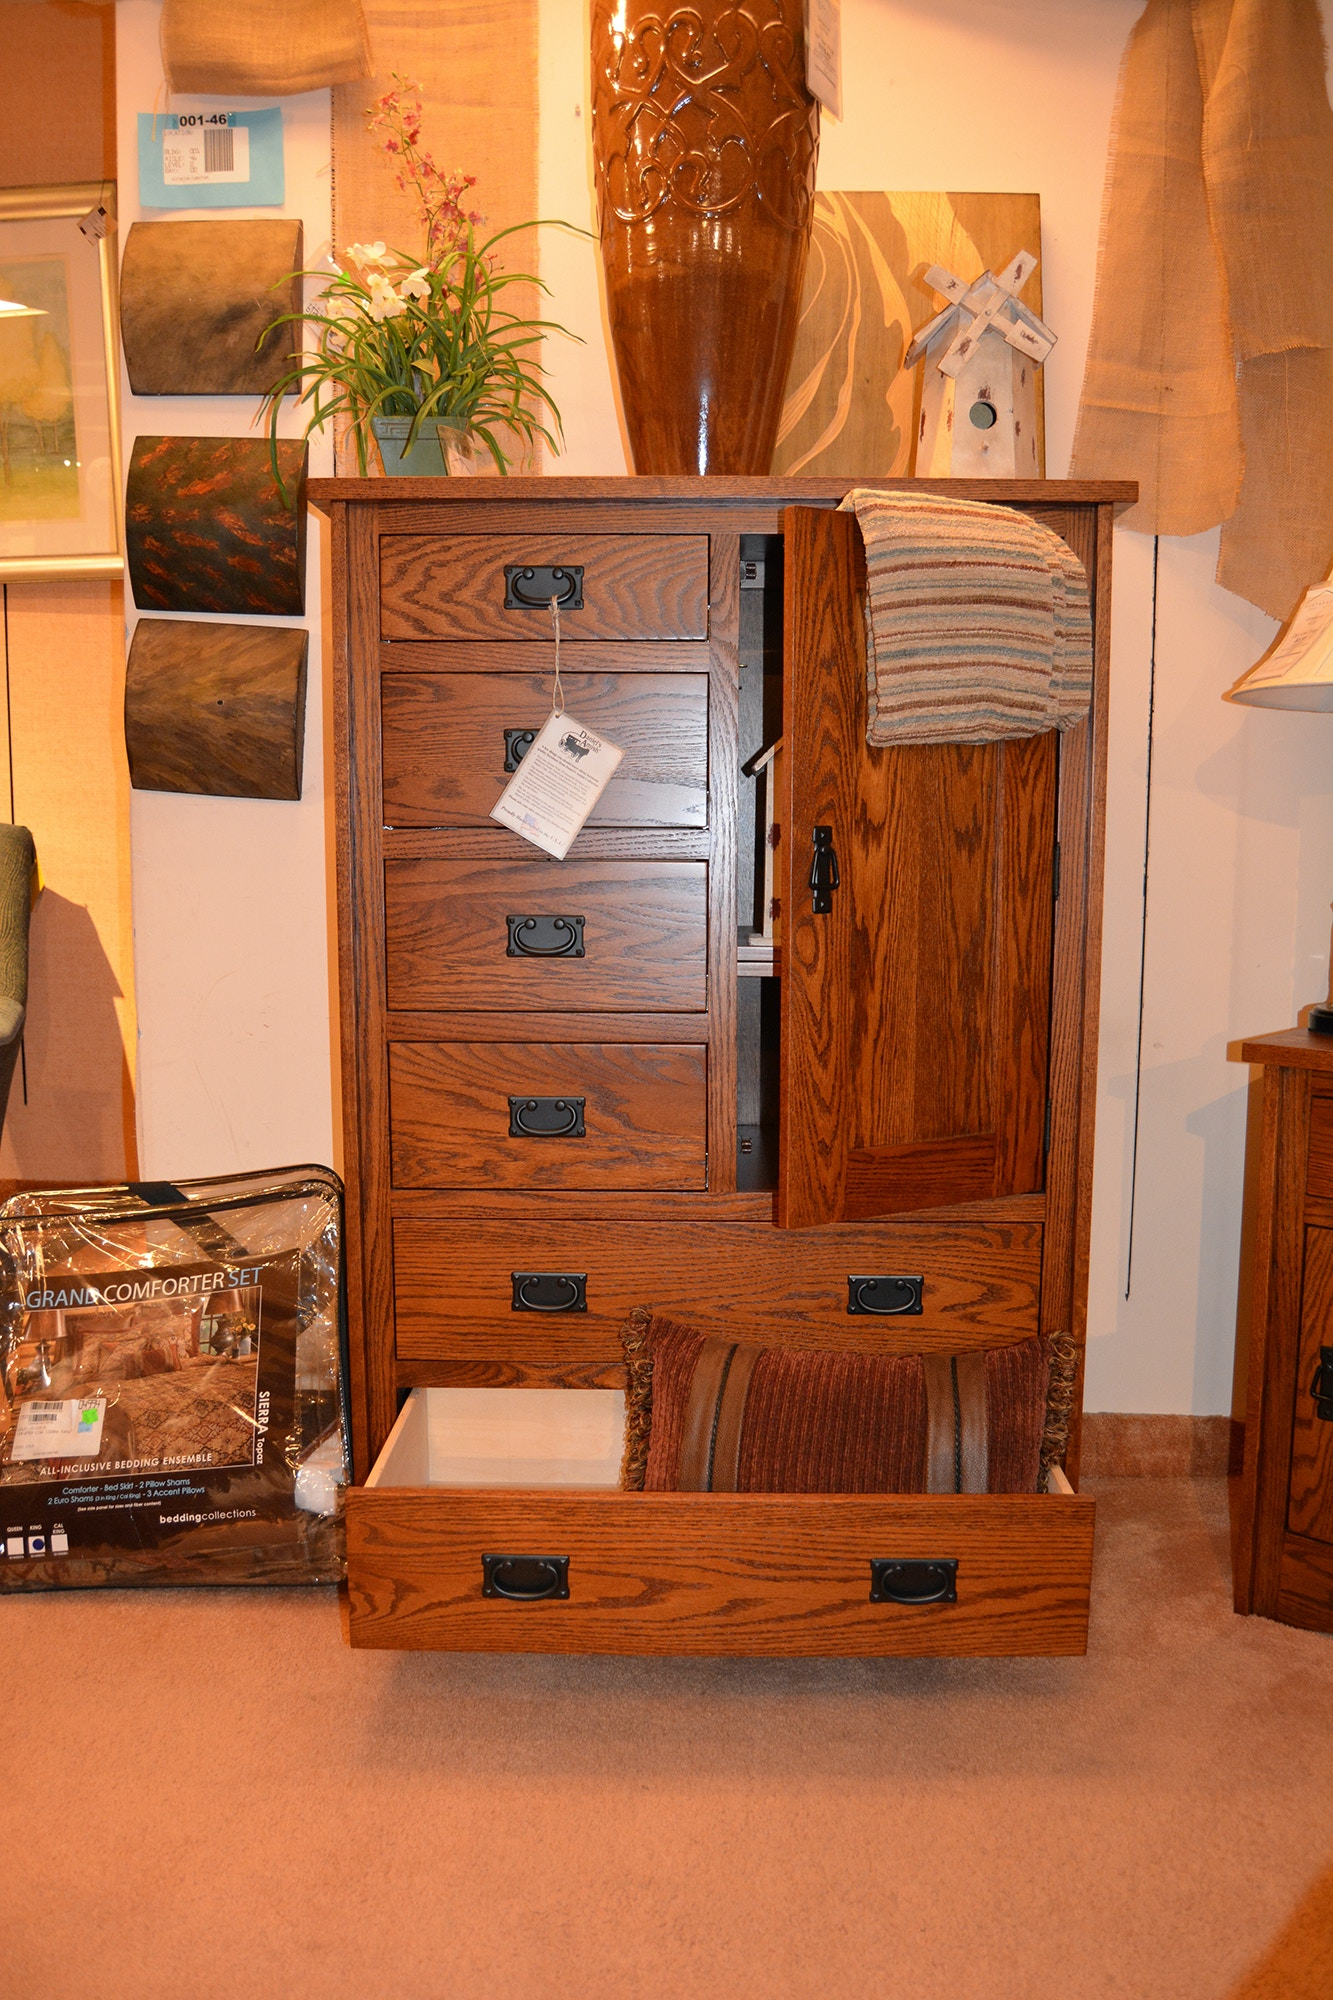 Danielu0027s Amish Mission Armoire 31 3110 10 15 At Gustafsonu0027s Furniture And  Mattress